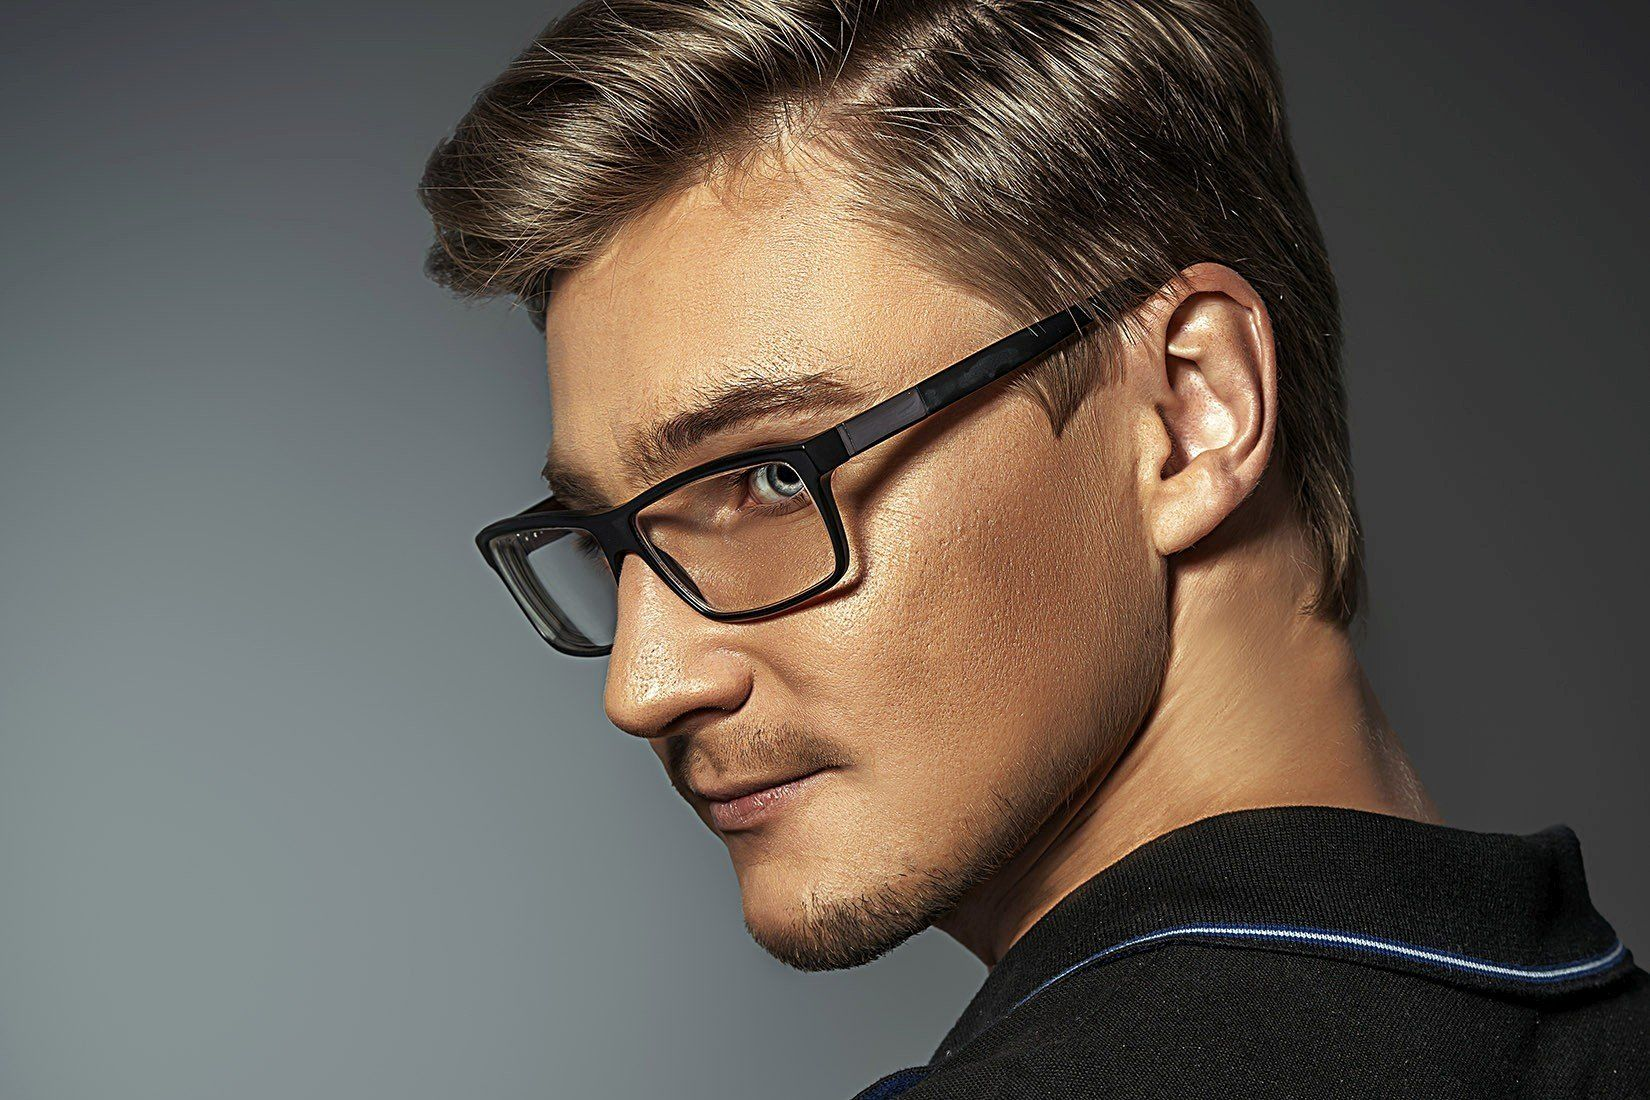 8a18be7c601d7 Spectacles at Visio Optical  A fine selection of spectacles of real quality.